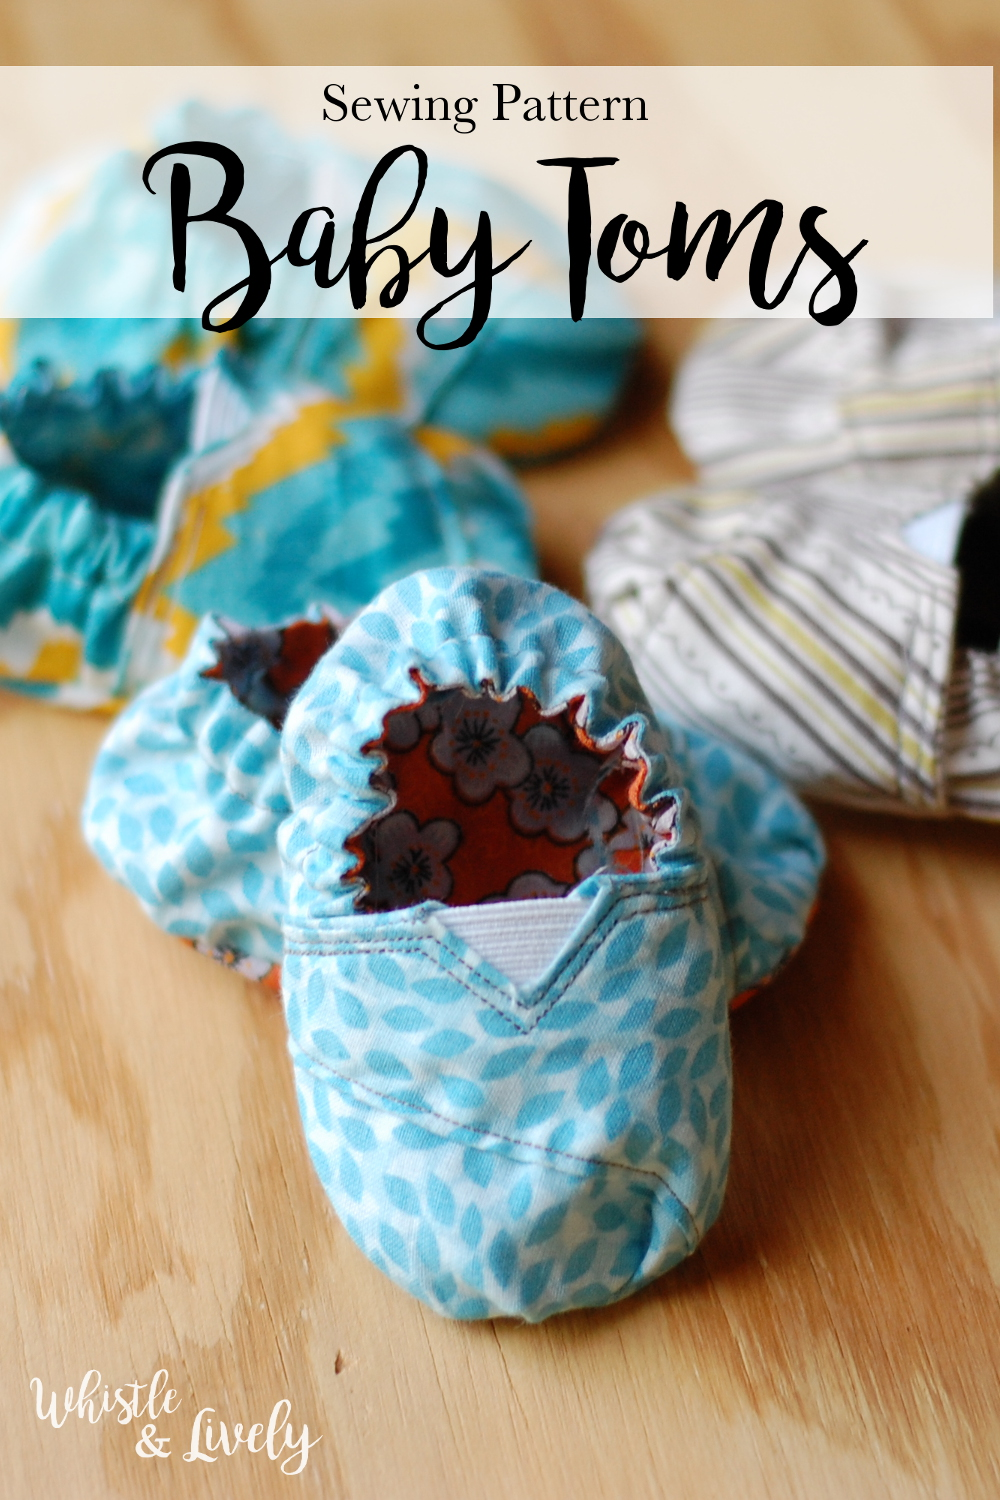 Tom's Inspired Baby Shoes - Sew your Little One these adorable little baby shoes, inspired by Tom's! With practice, anyone can make these cute shoes!